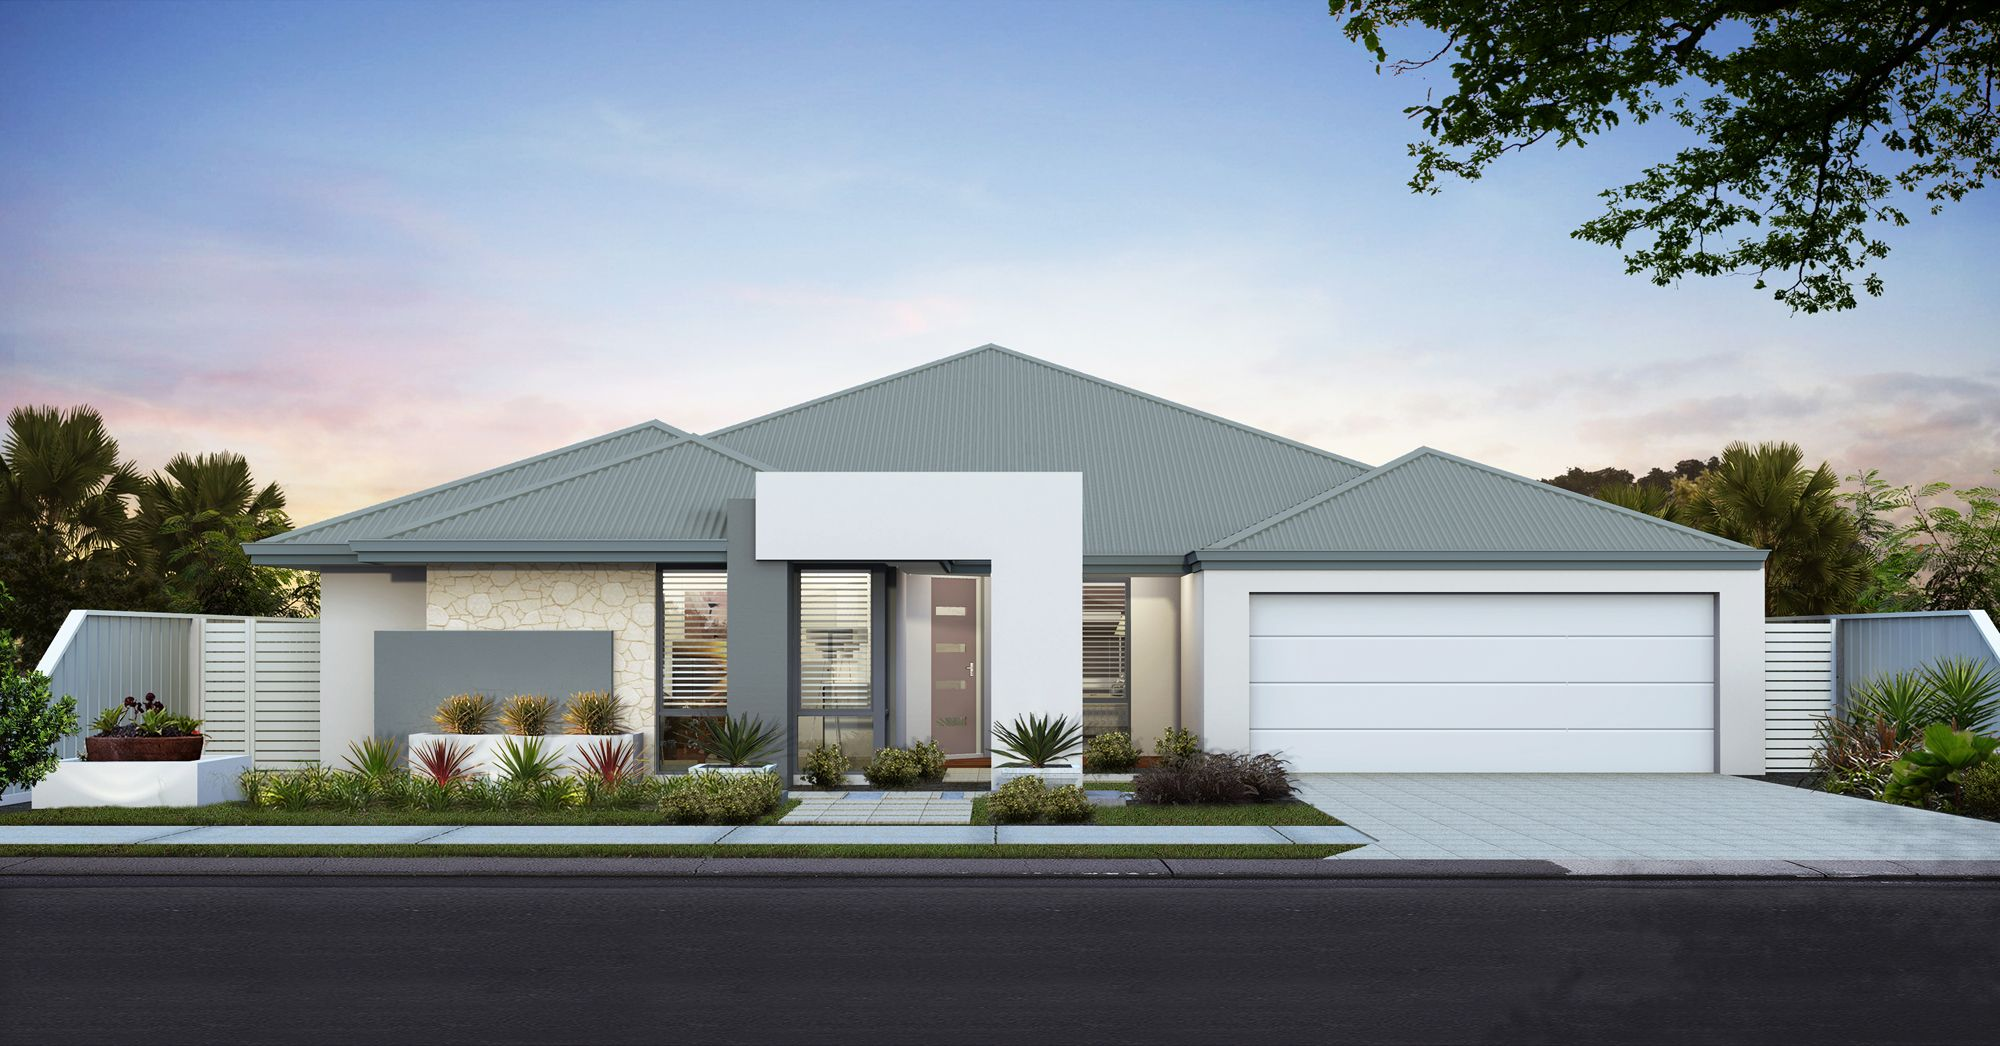 The ebony blueprint homes new home builders perth wa fachadas the new essentials range homes now unveiled house and land packages perth wa new home builders perth malvernweather Gallery